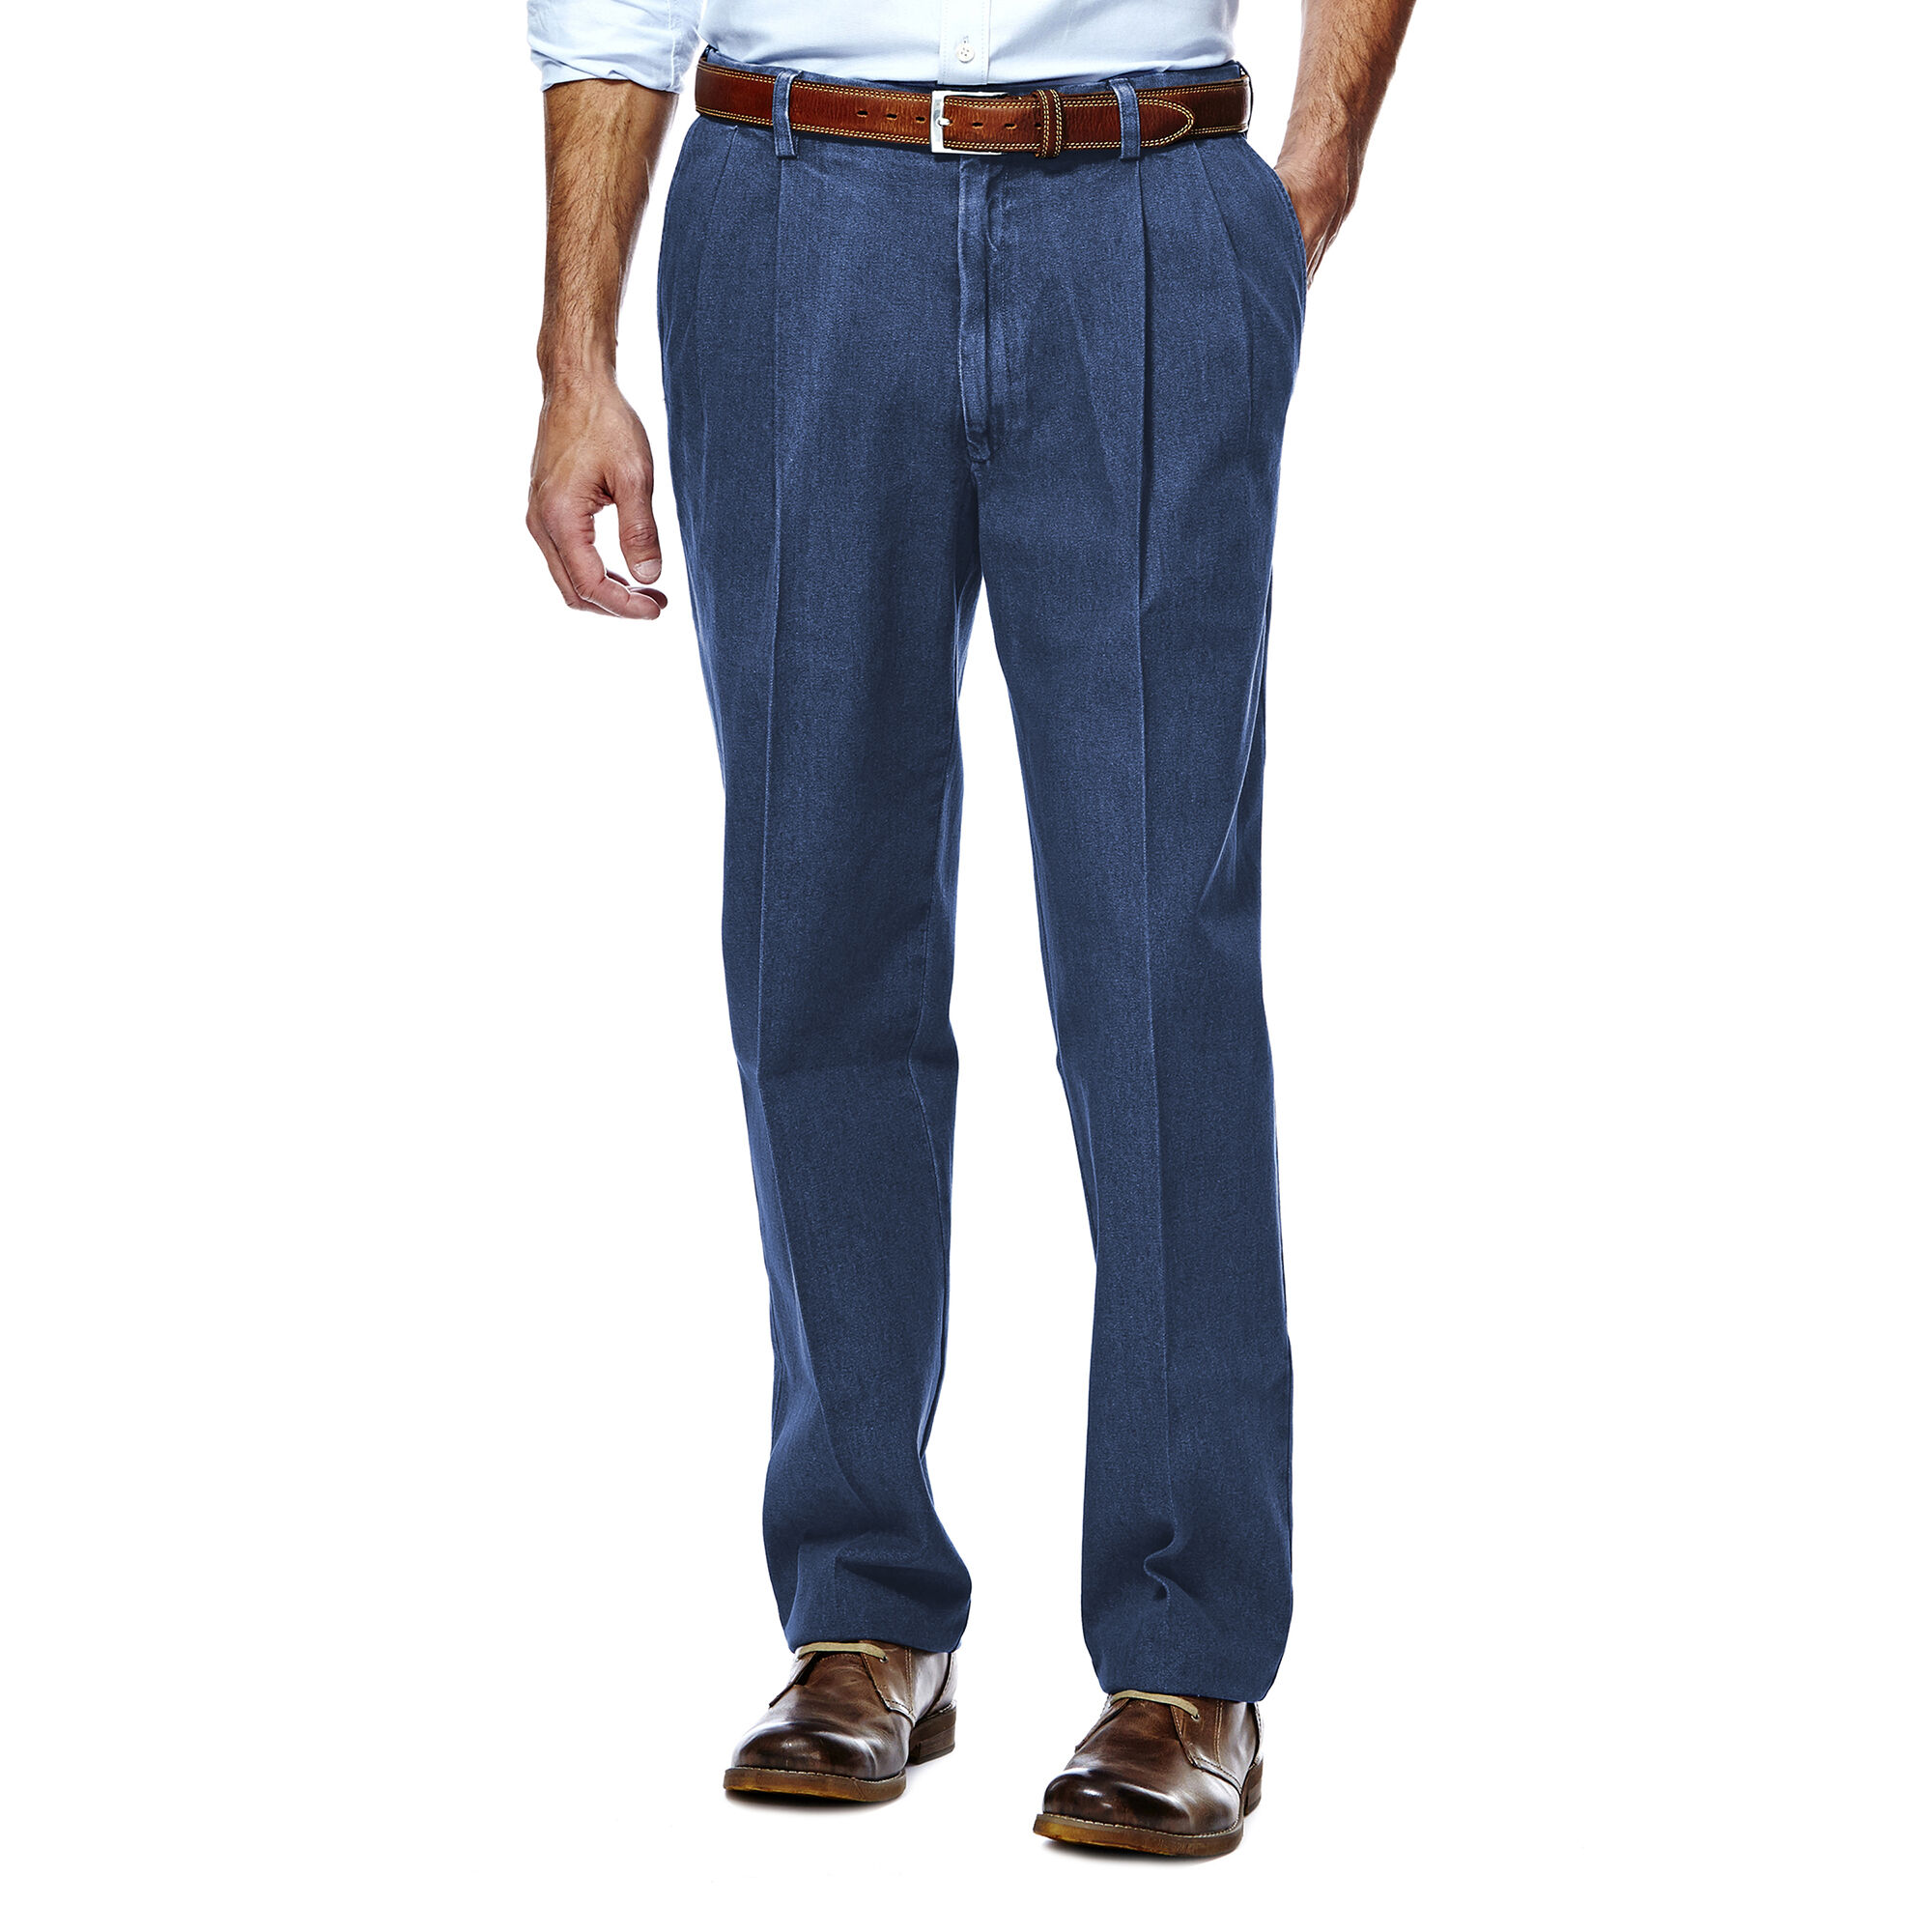 Men's Denim Pants - Denim and Jeans at Haggar